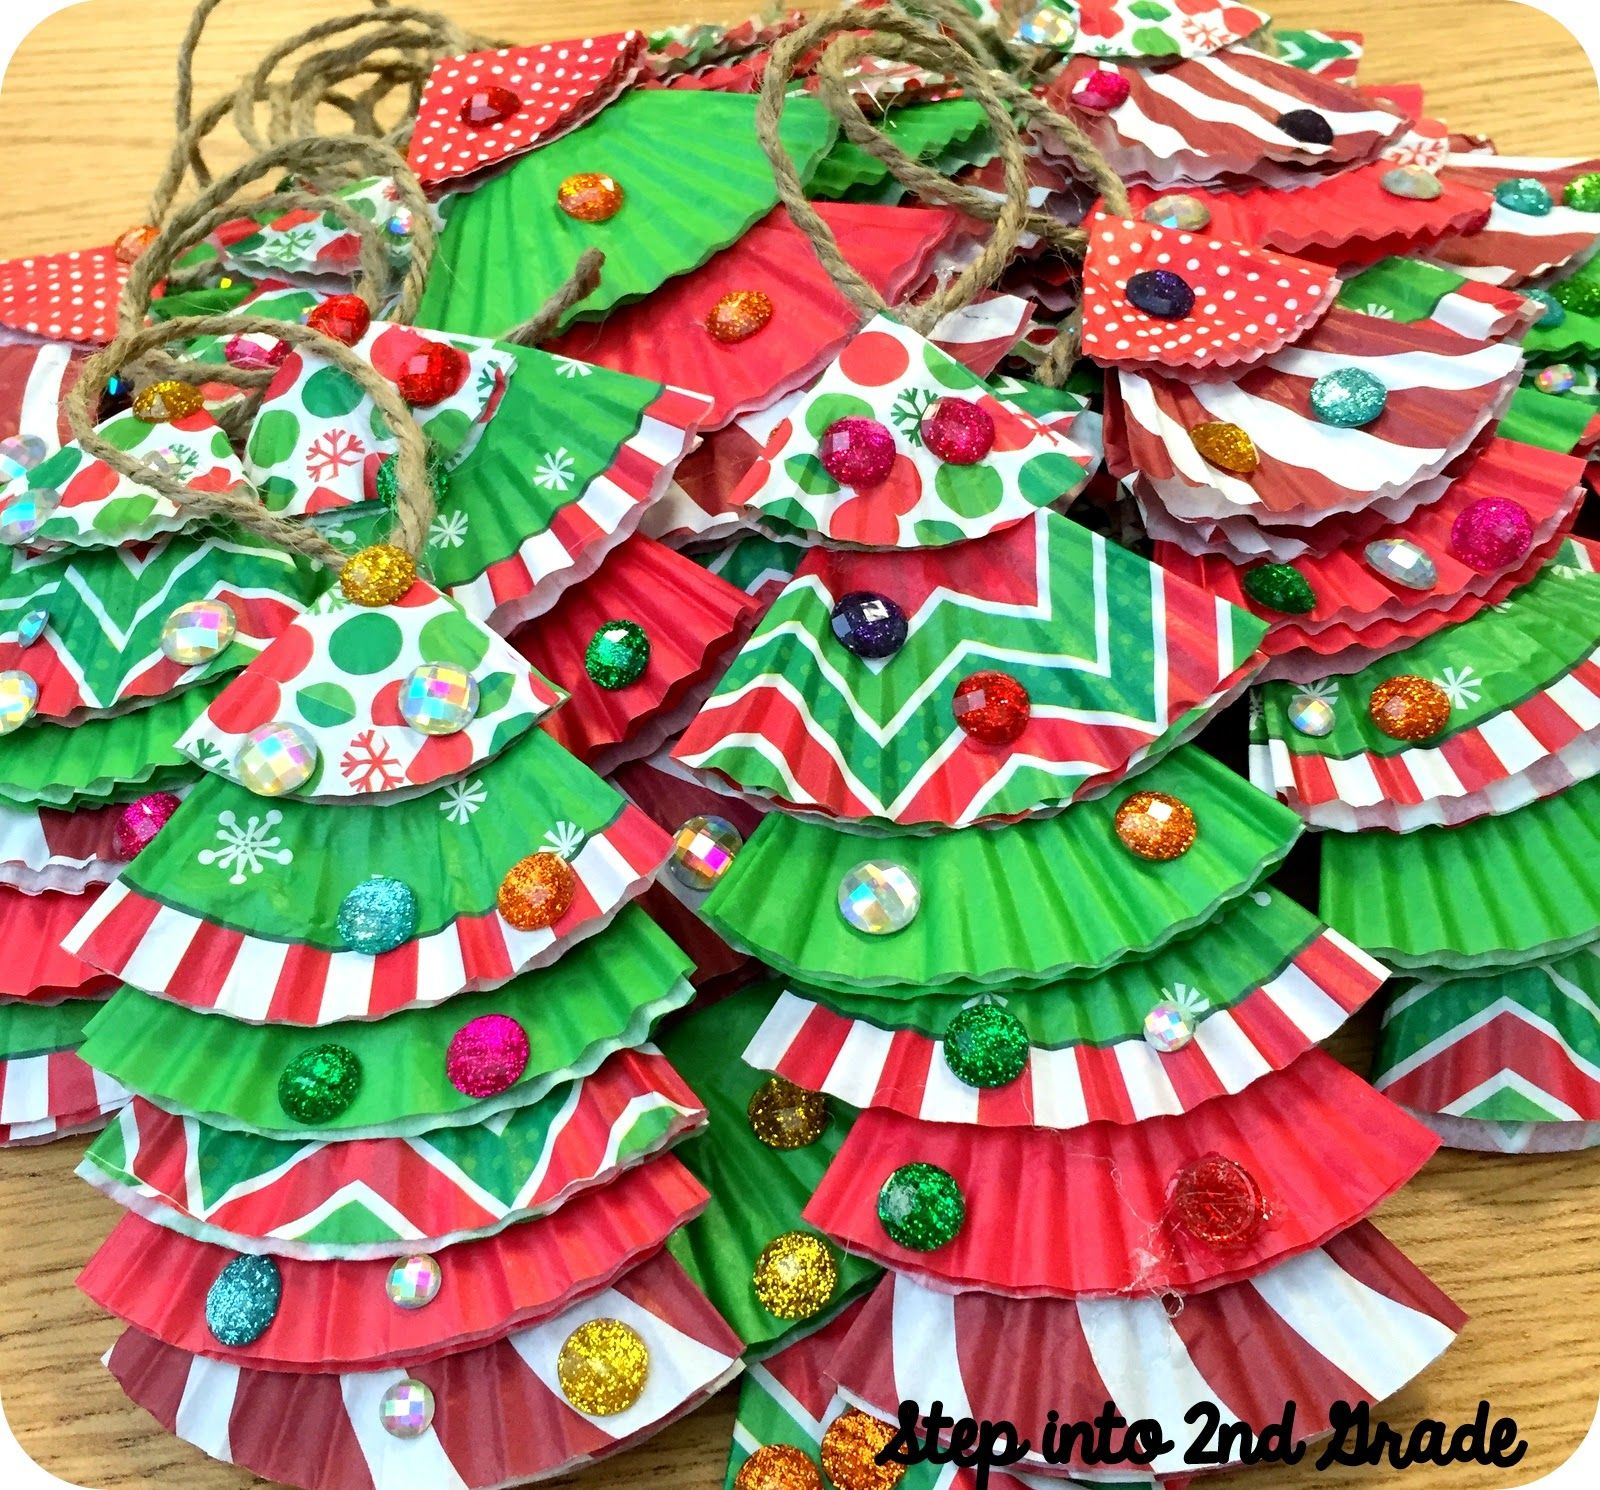 Charming Second Grade Christmas Party Ideas Part - 5: Step Into 2nd Grade With Mrs. Lemons: A Whole Lotta Christmas! This Would